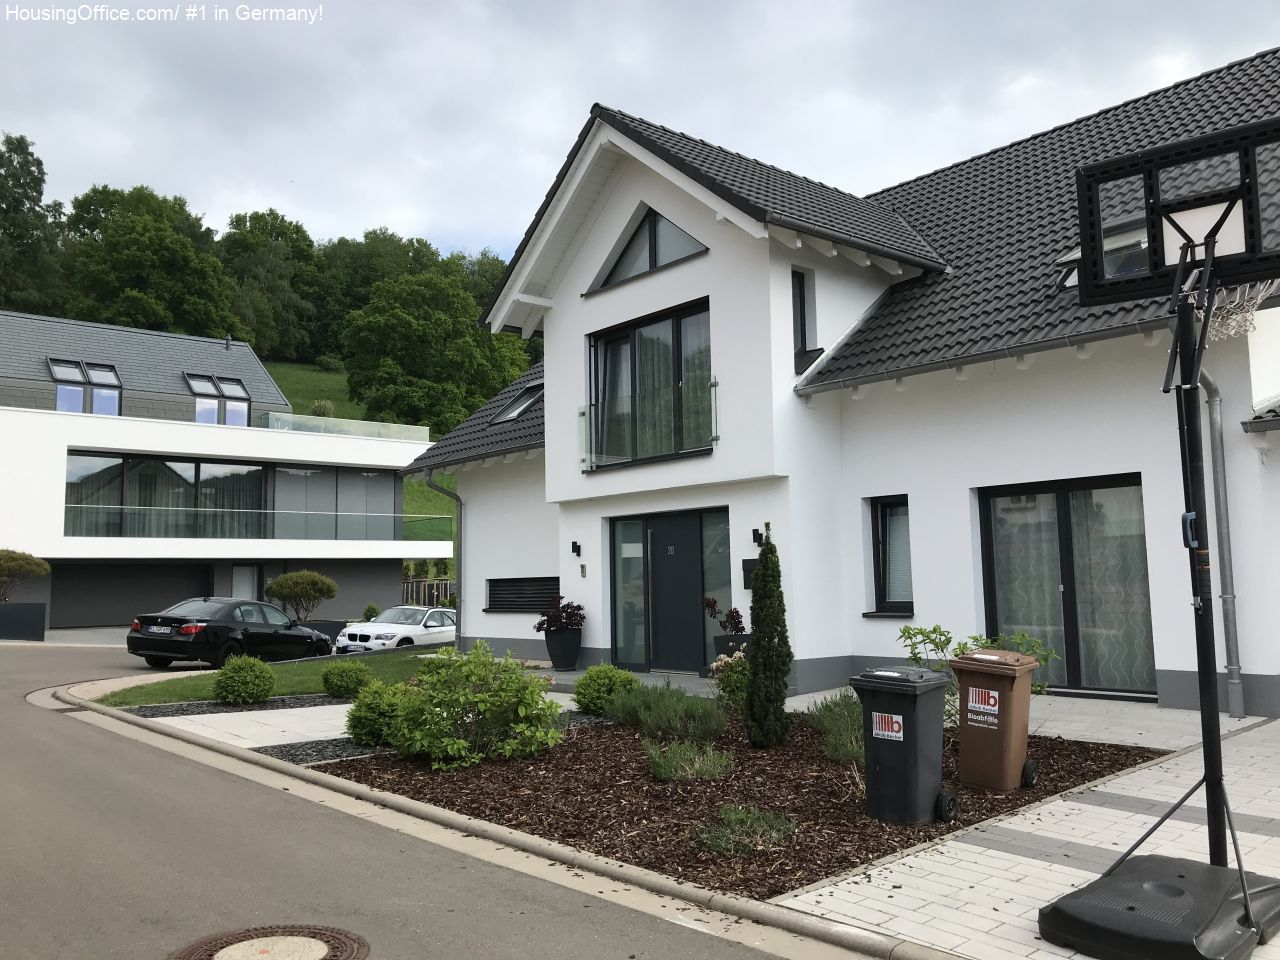 Real Estate Germany  Houses For Rent   Single familiy home